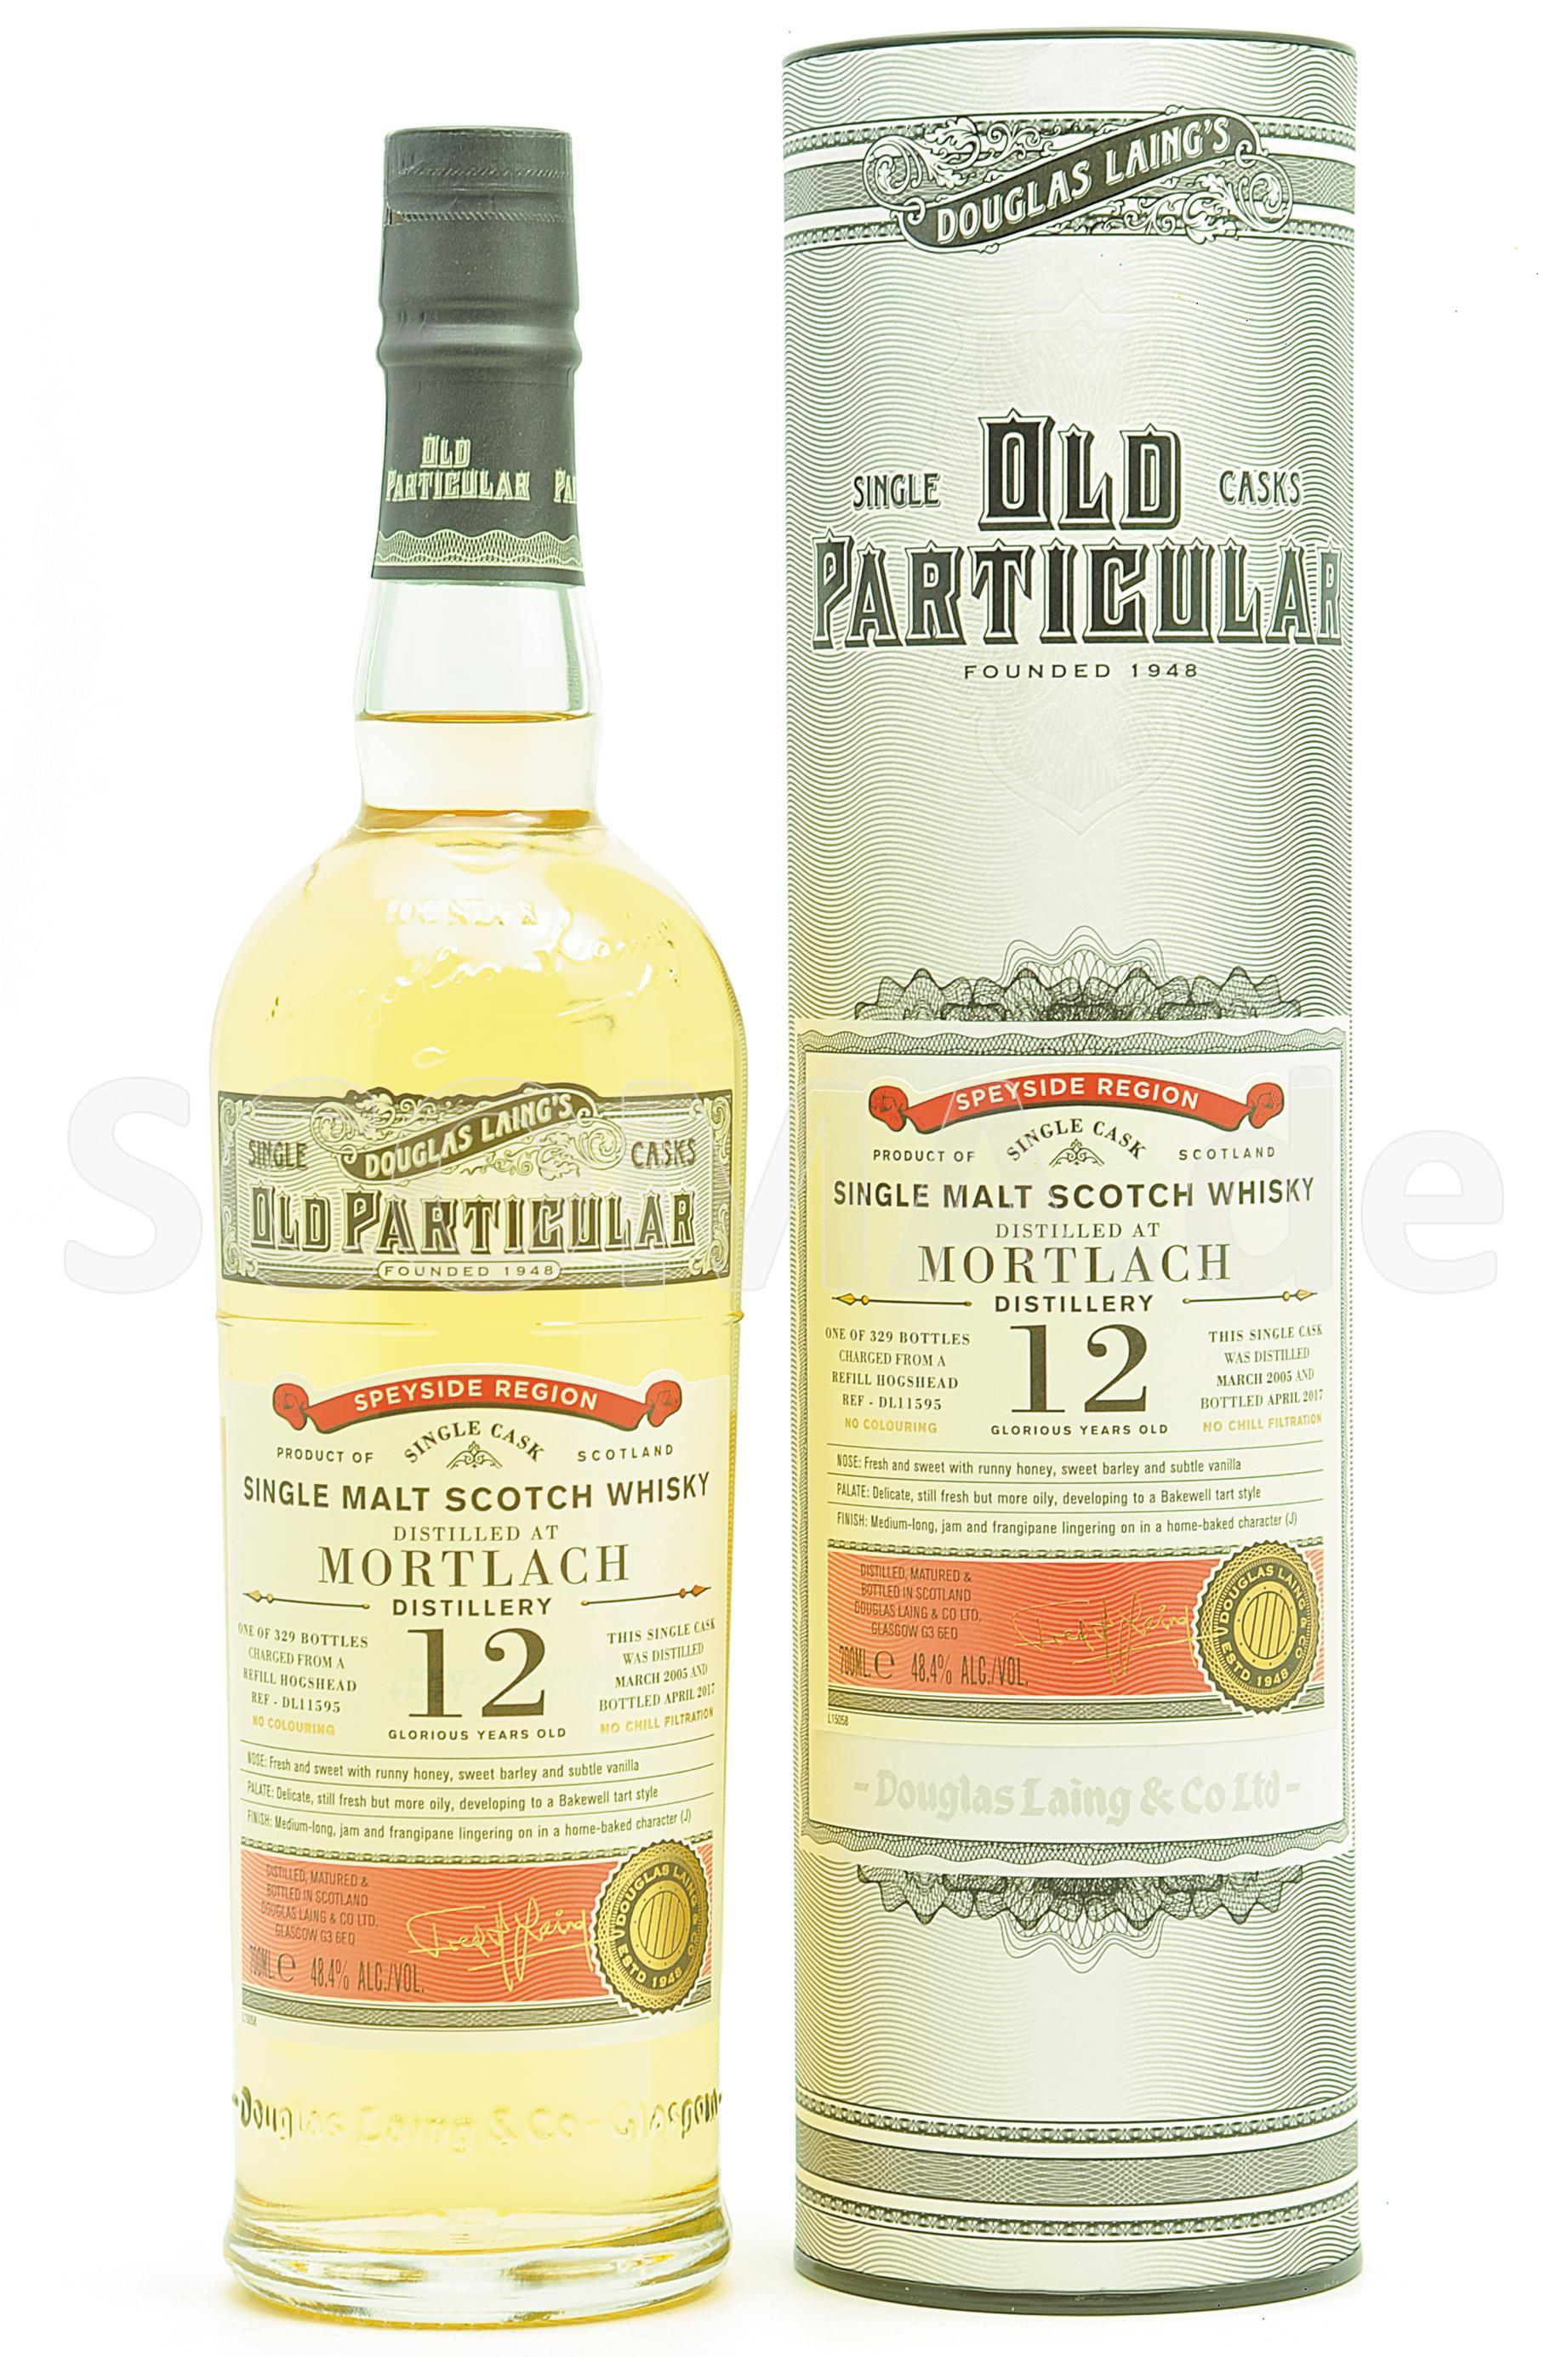 Mortlach Old Particular 2005/2...